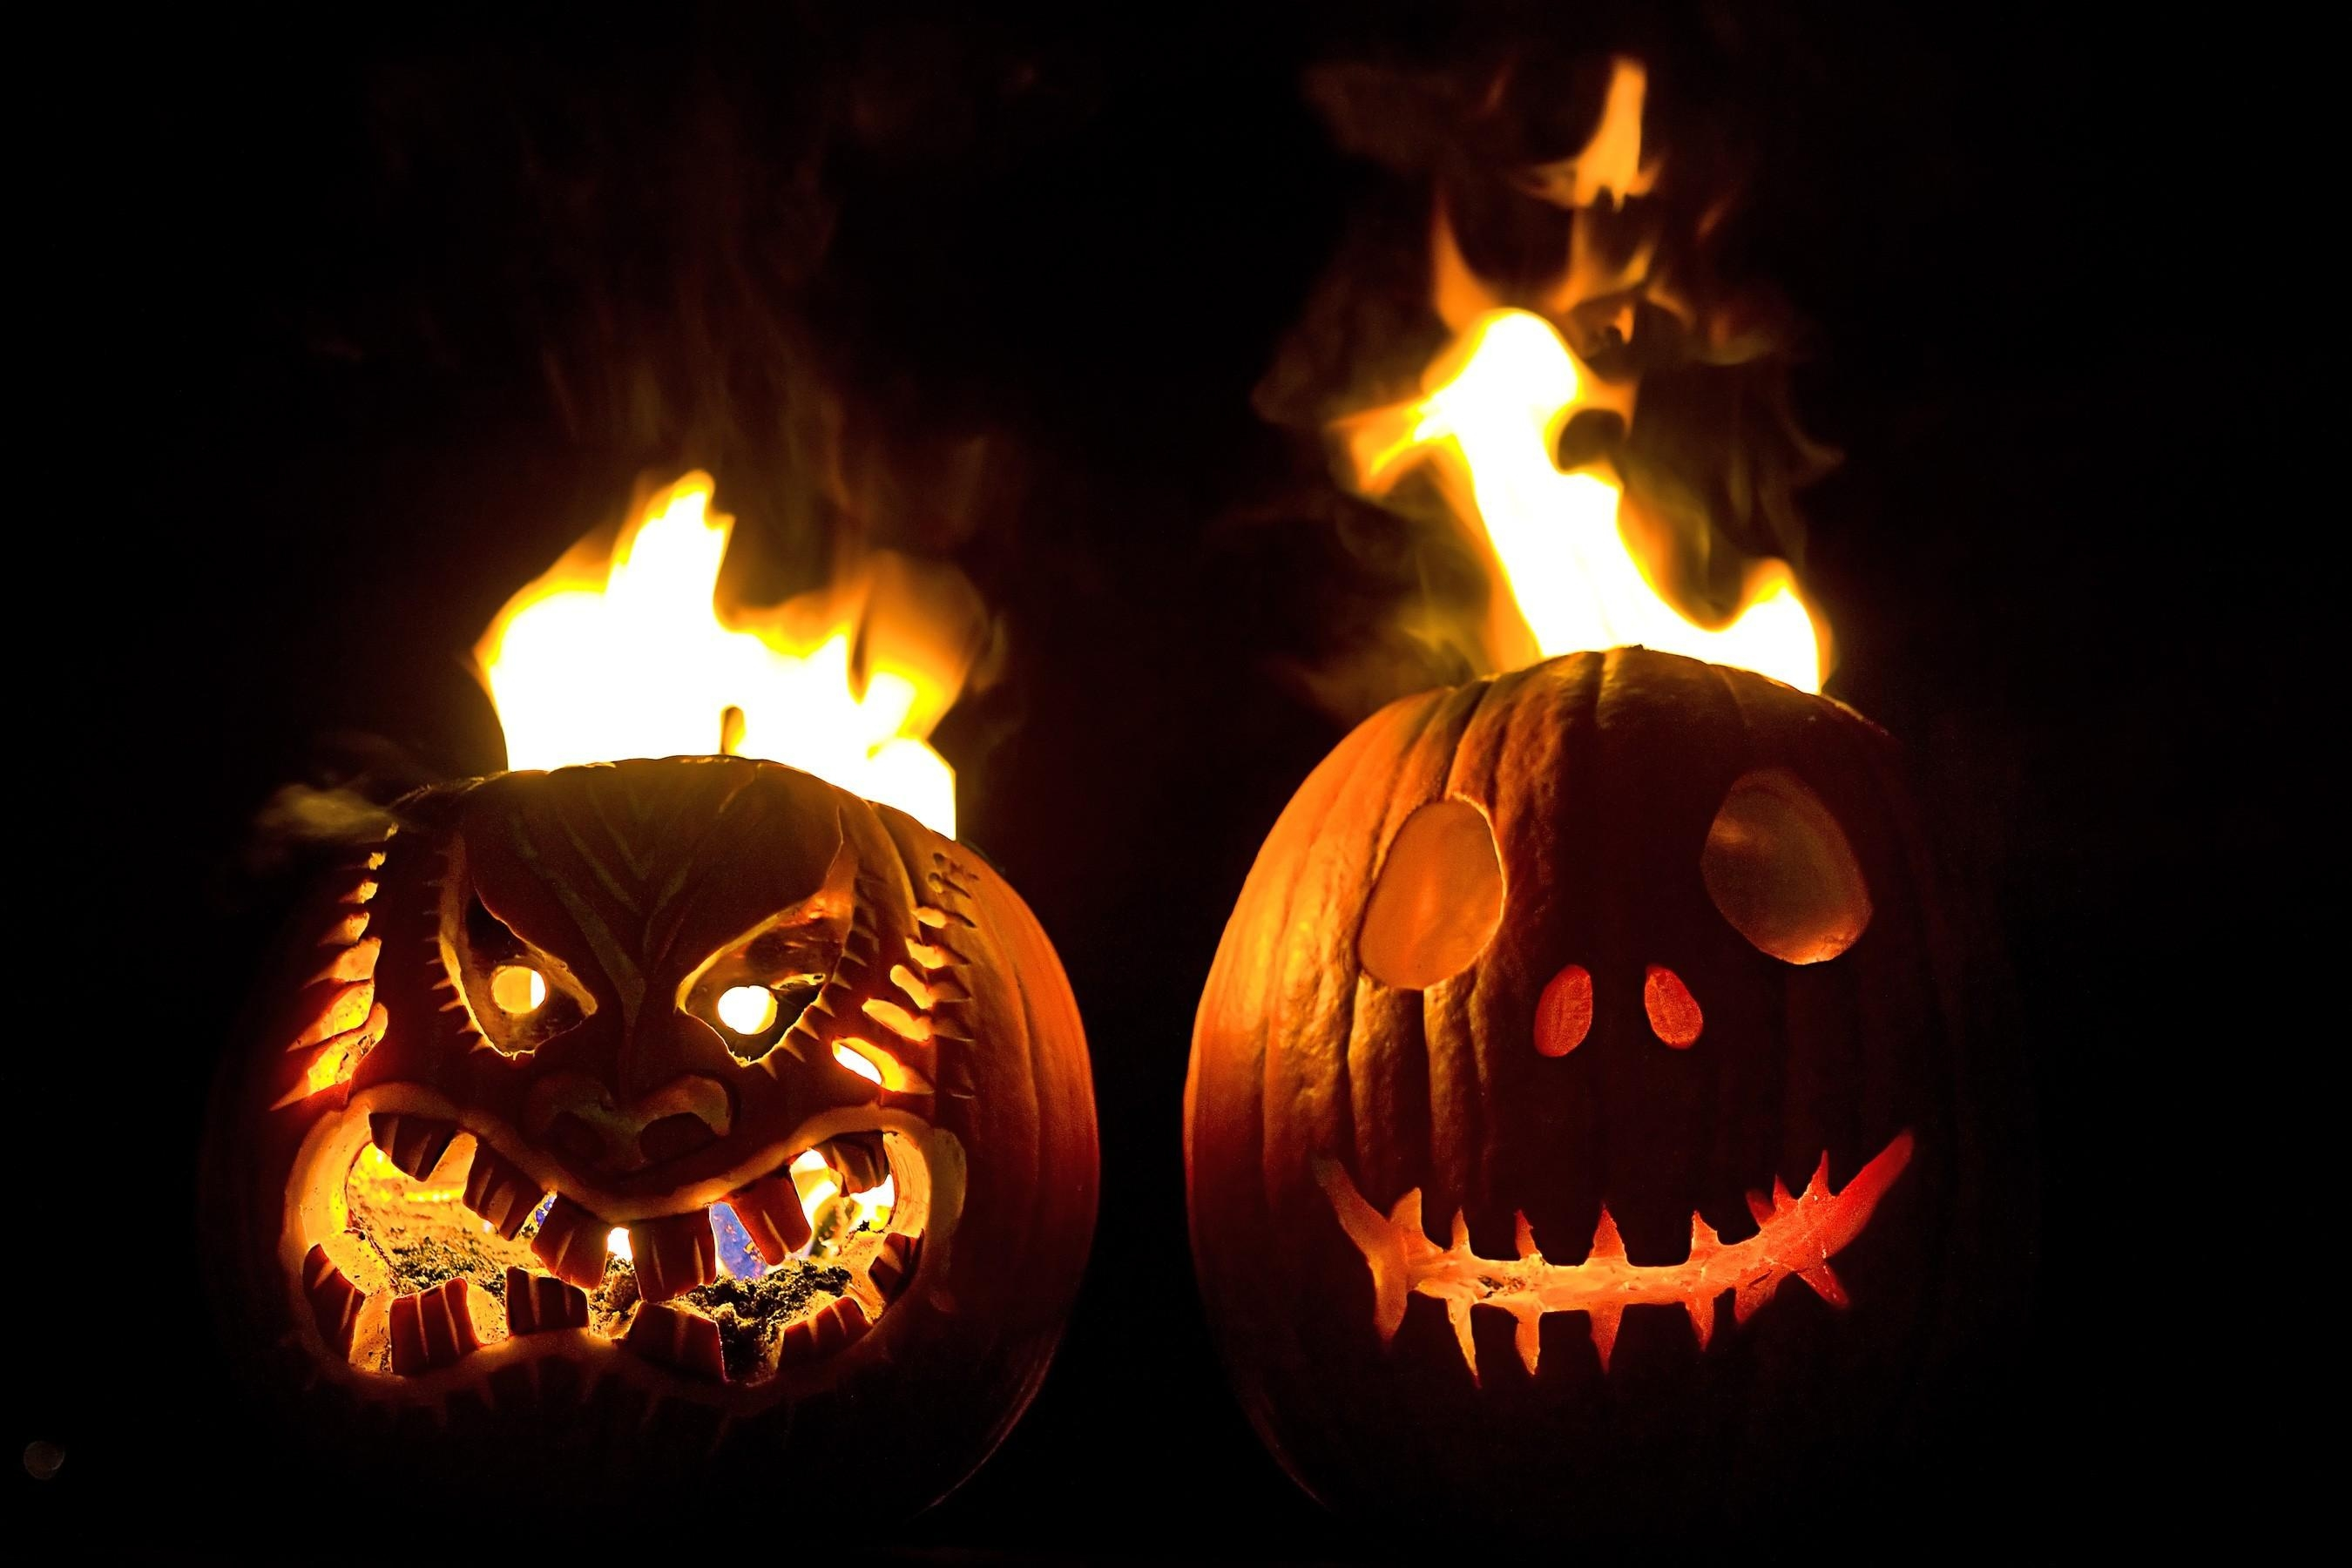 80194 download wallpaper Holidays, Halloween, Holiday, Muzzles, Muzzle, Couple, Pair, Fire, Black Background, Pumpkin screensavers and pictures for free